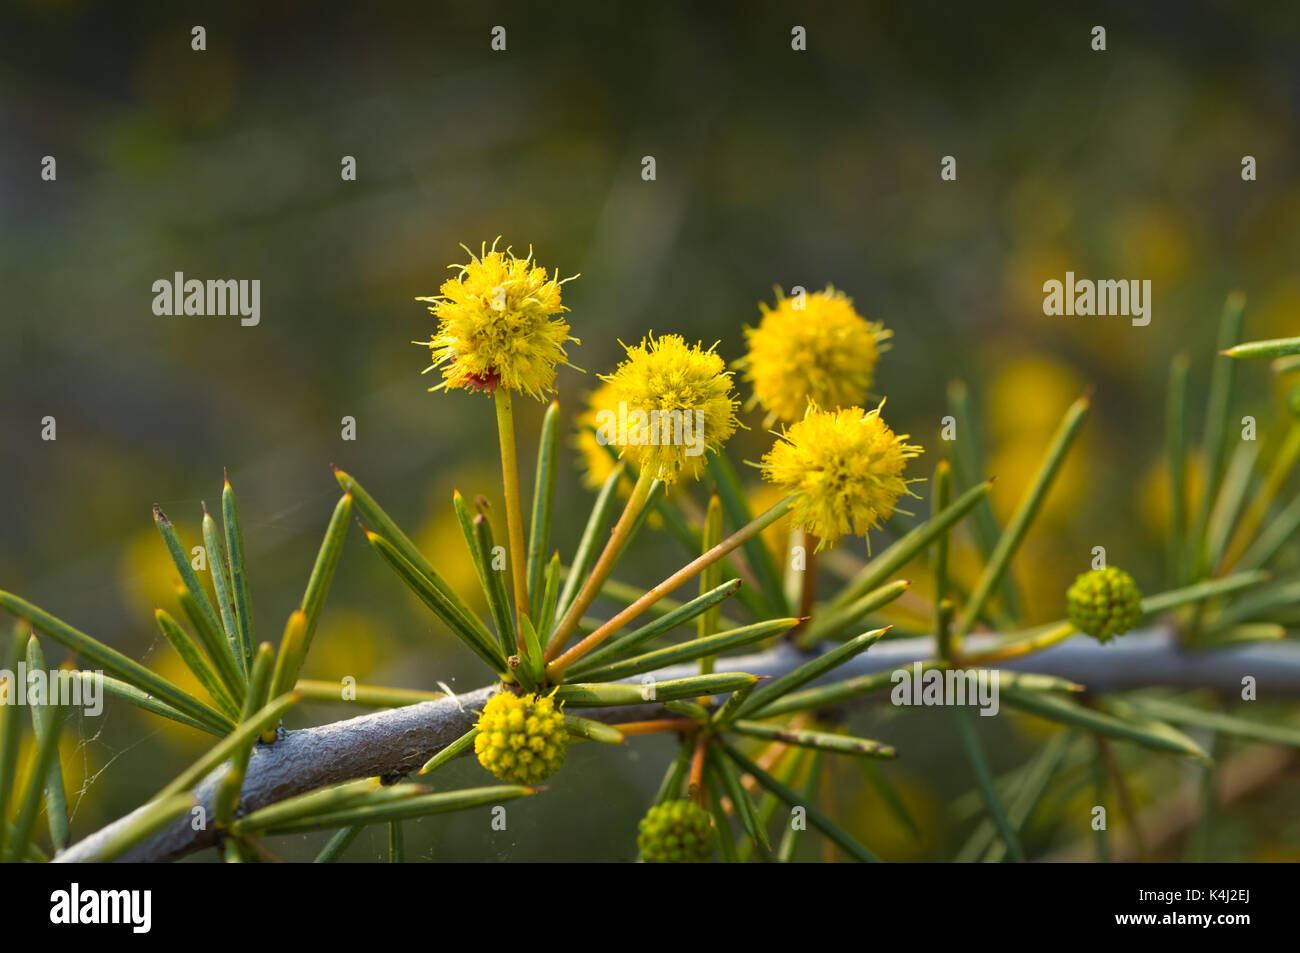 Acacia tetragonophylla, commonly called Dead Finish or Needle Wattle. - Stock Image